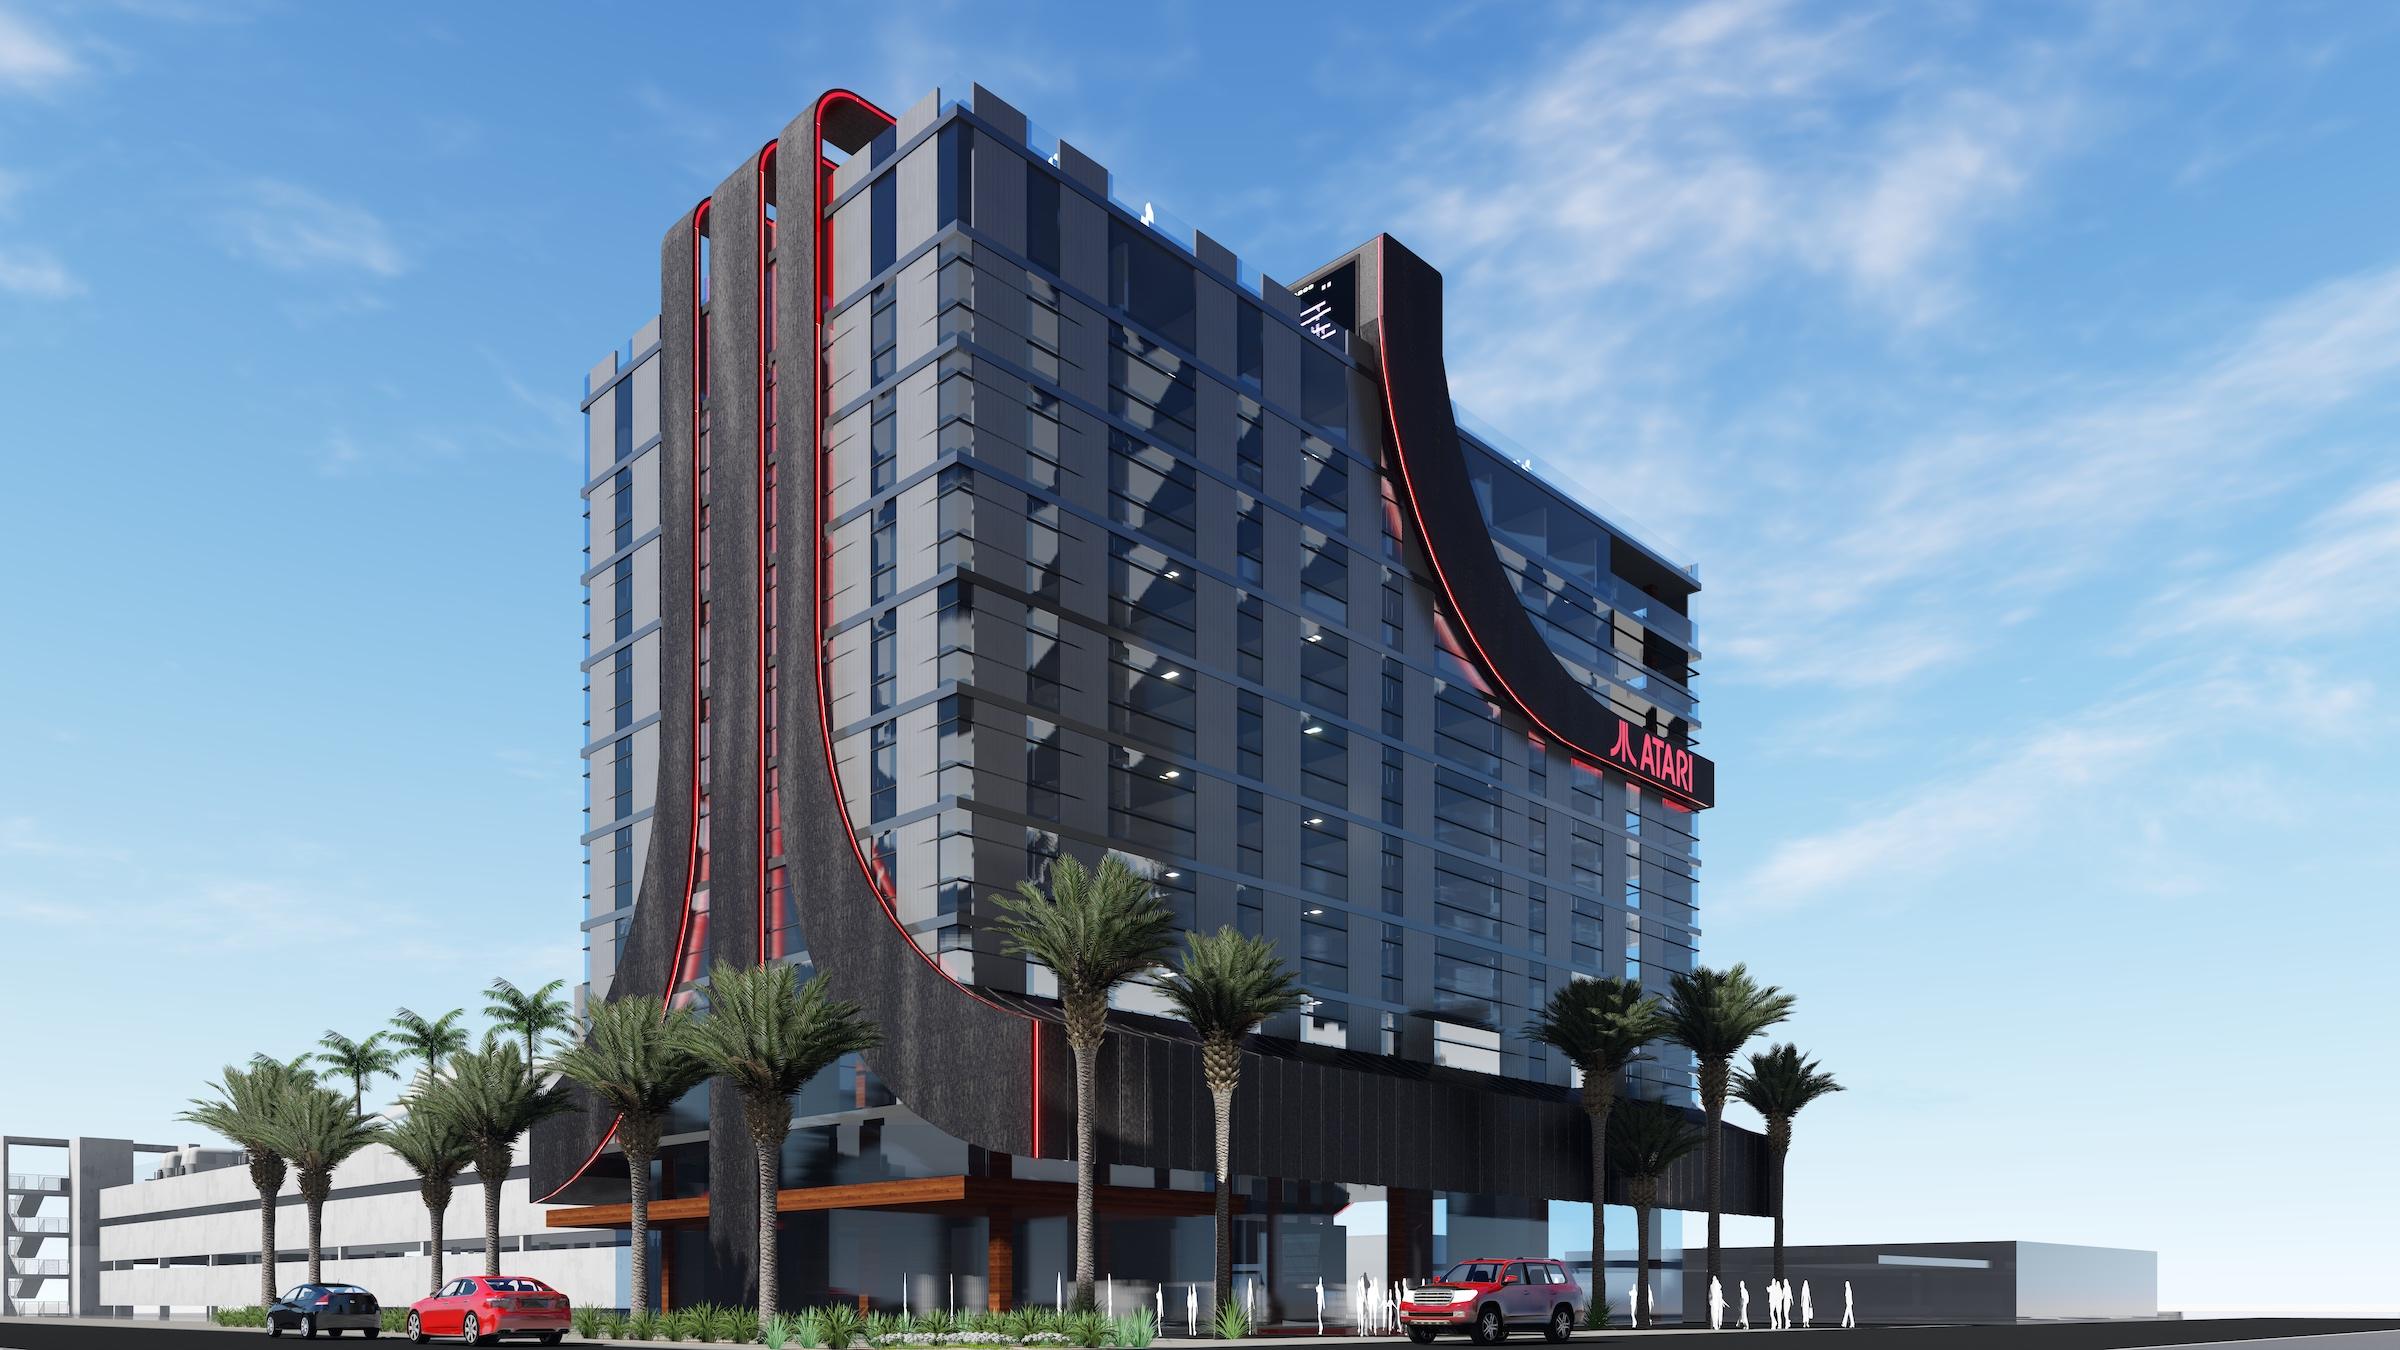 A render of the Atari Hotel against a blue sky